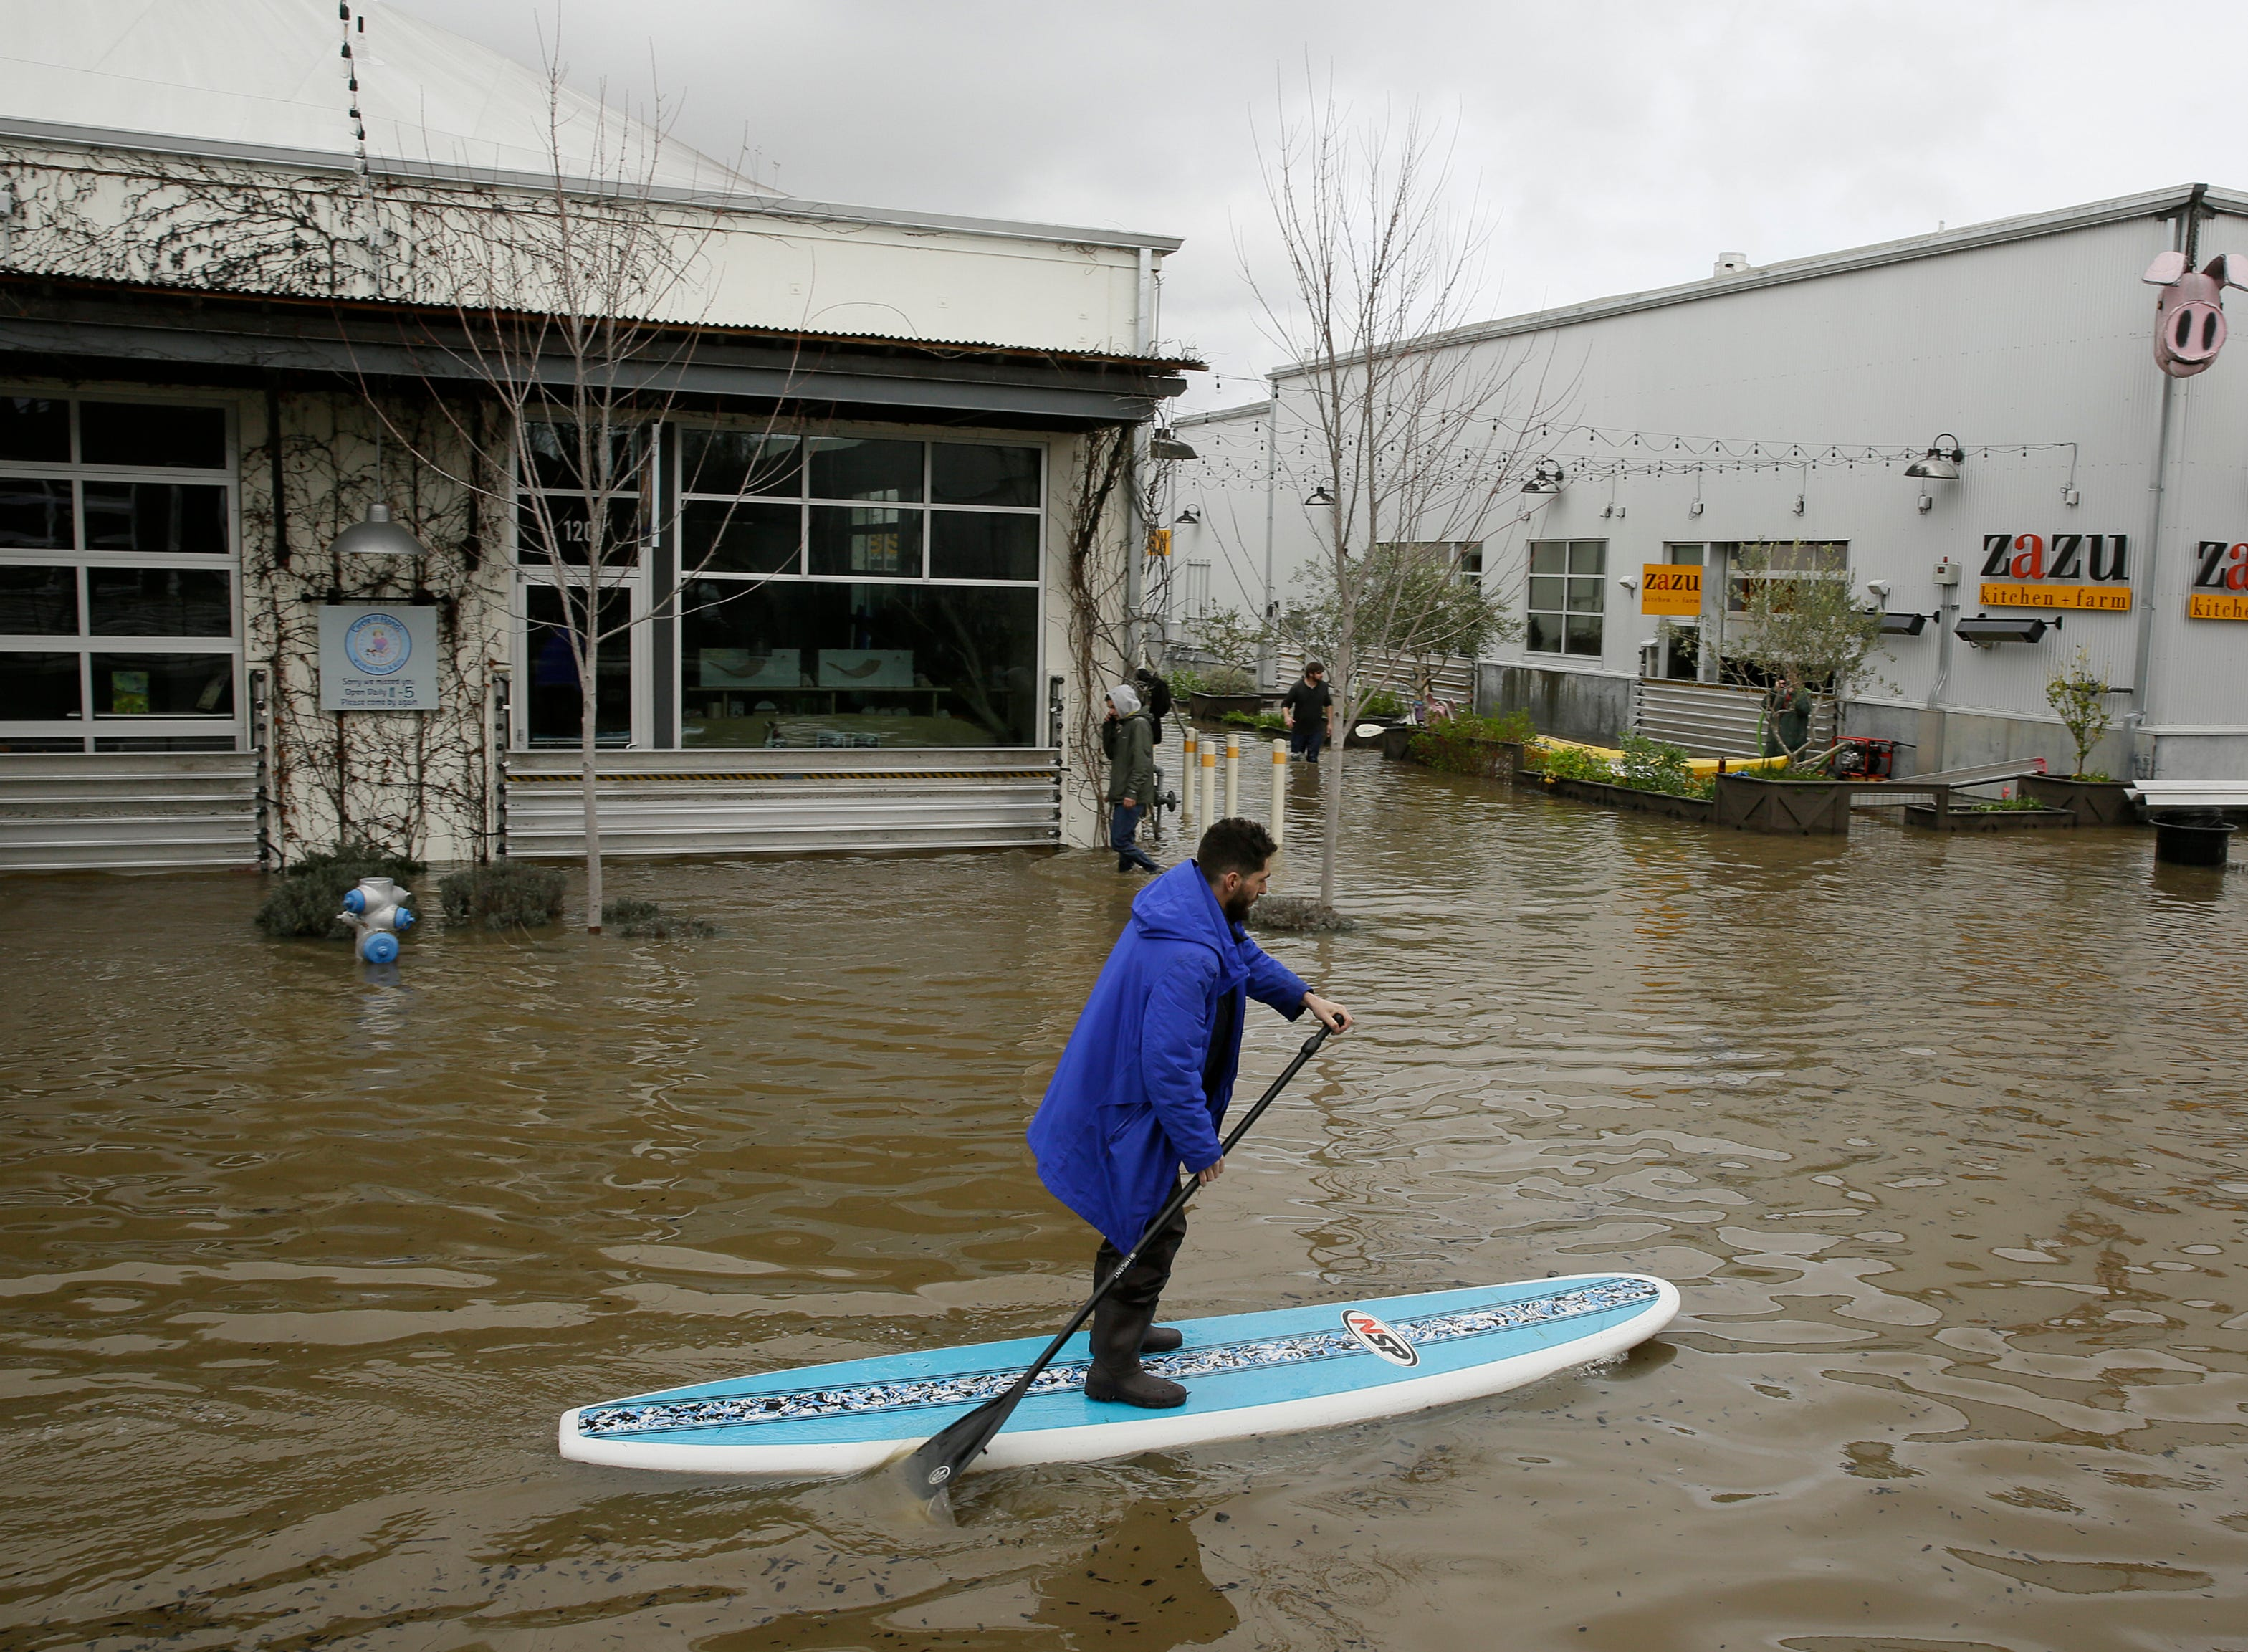 A man uses a paddle board to make his way through the flooded Barlow Market District Wednesday, Feb. 27, 2019, in Sebastopol, Calif.